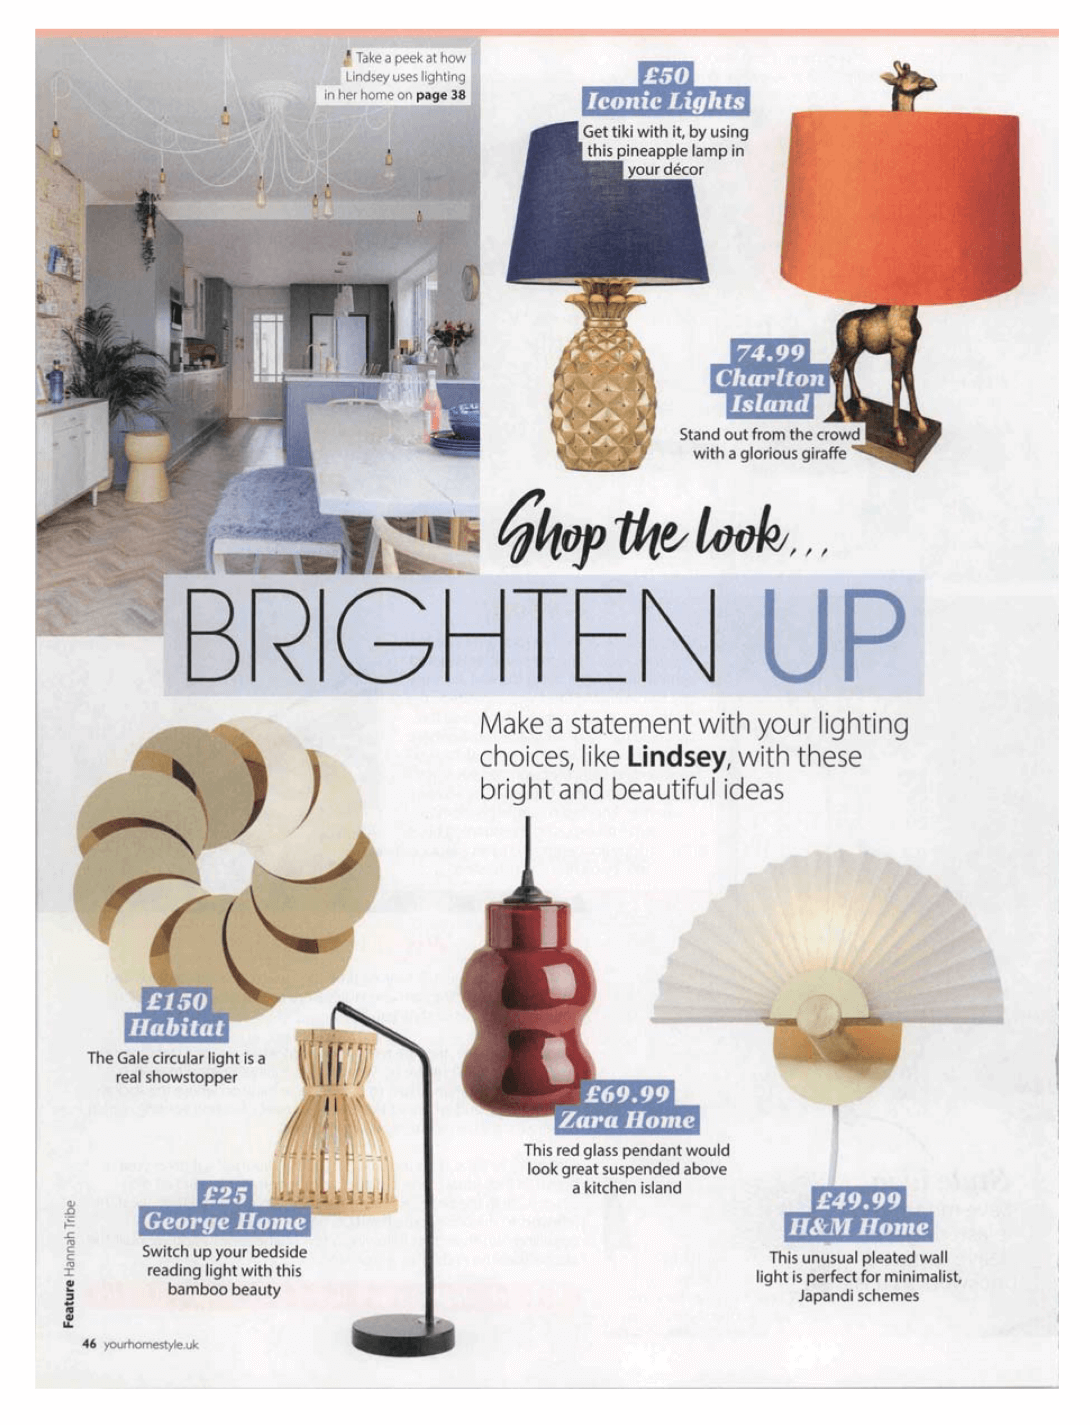 houseof-press-img-0321-homestylemag-brightenup-1